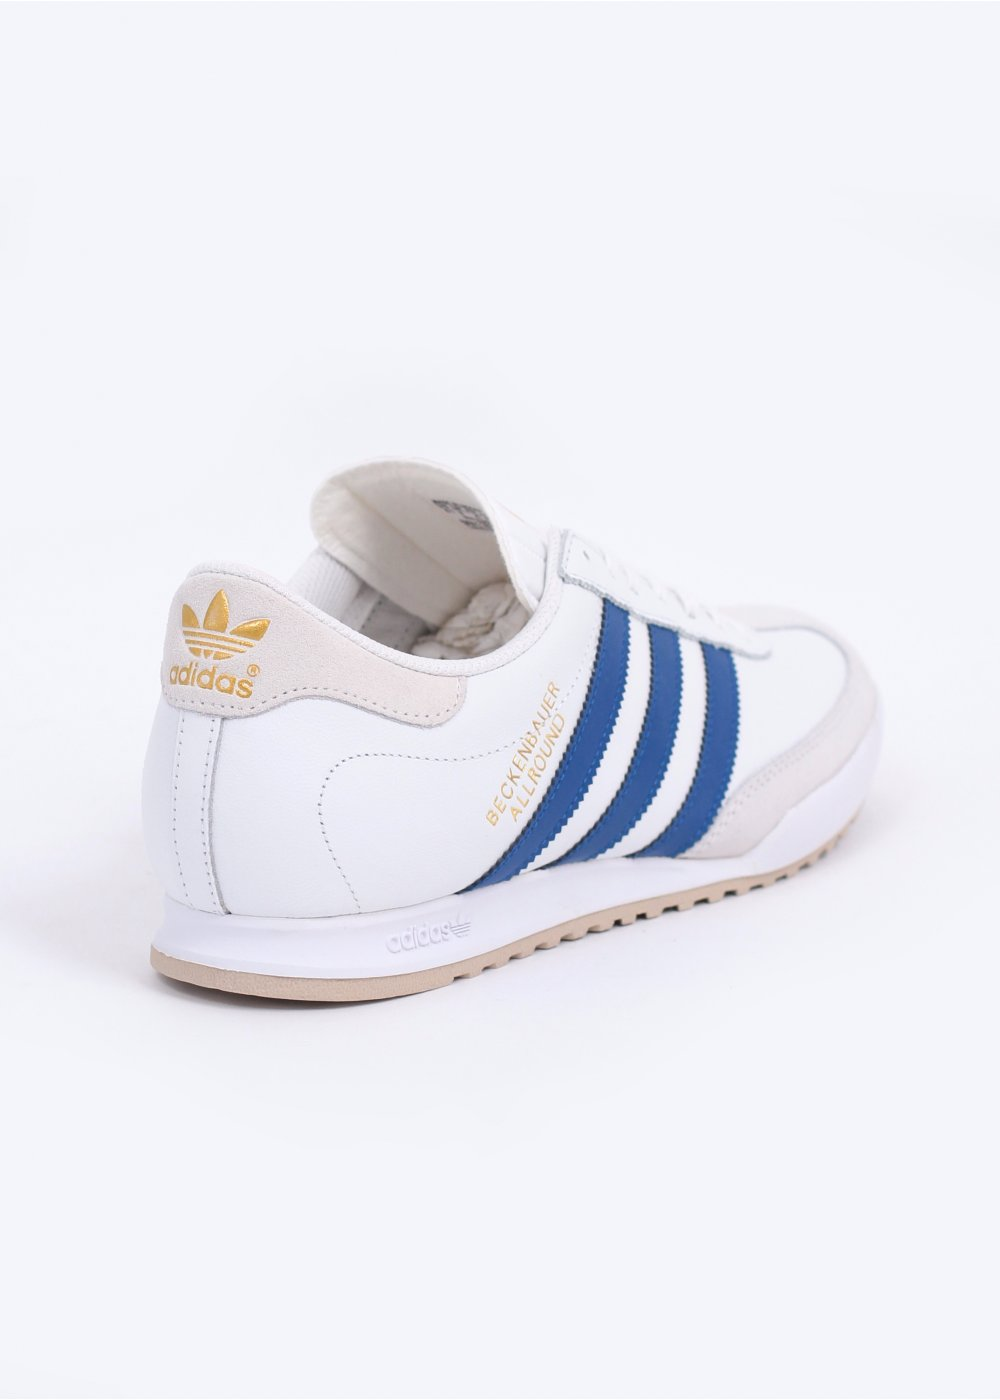 b0c0f23f93ba adidas Originals Beckenbauer Trainers - White   Royal Blue